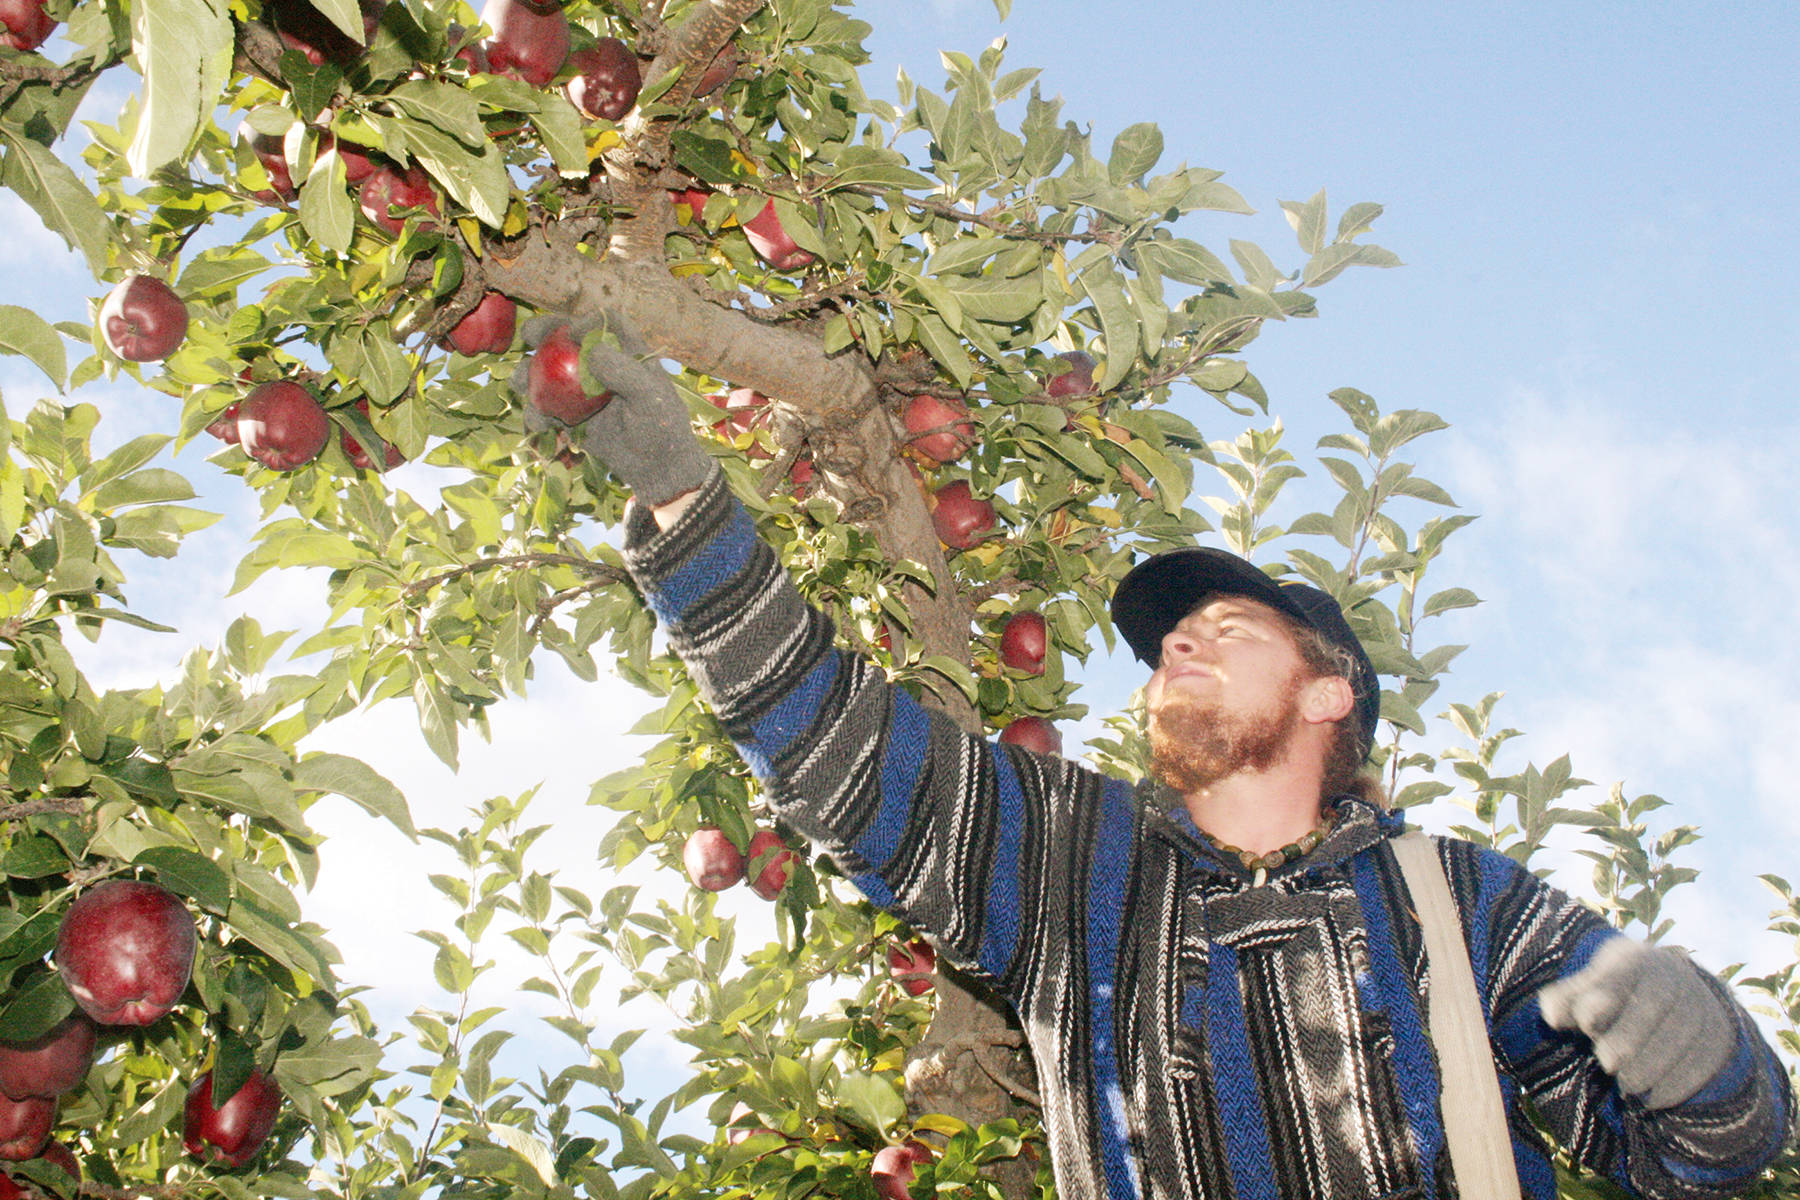 Hubert Pomerleau picks Red Delicious apples from an orchard in Summerland in this 2016 photo. This year, because of the COVID-19 pandemic, fruit growers throughout British Columbia will face additional challenges. (Summerland Review file photo)